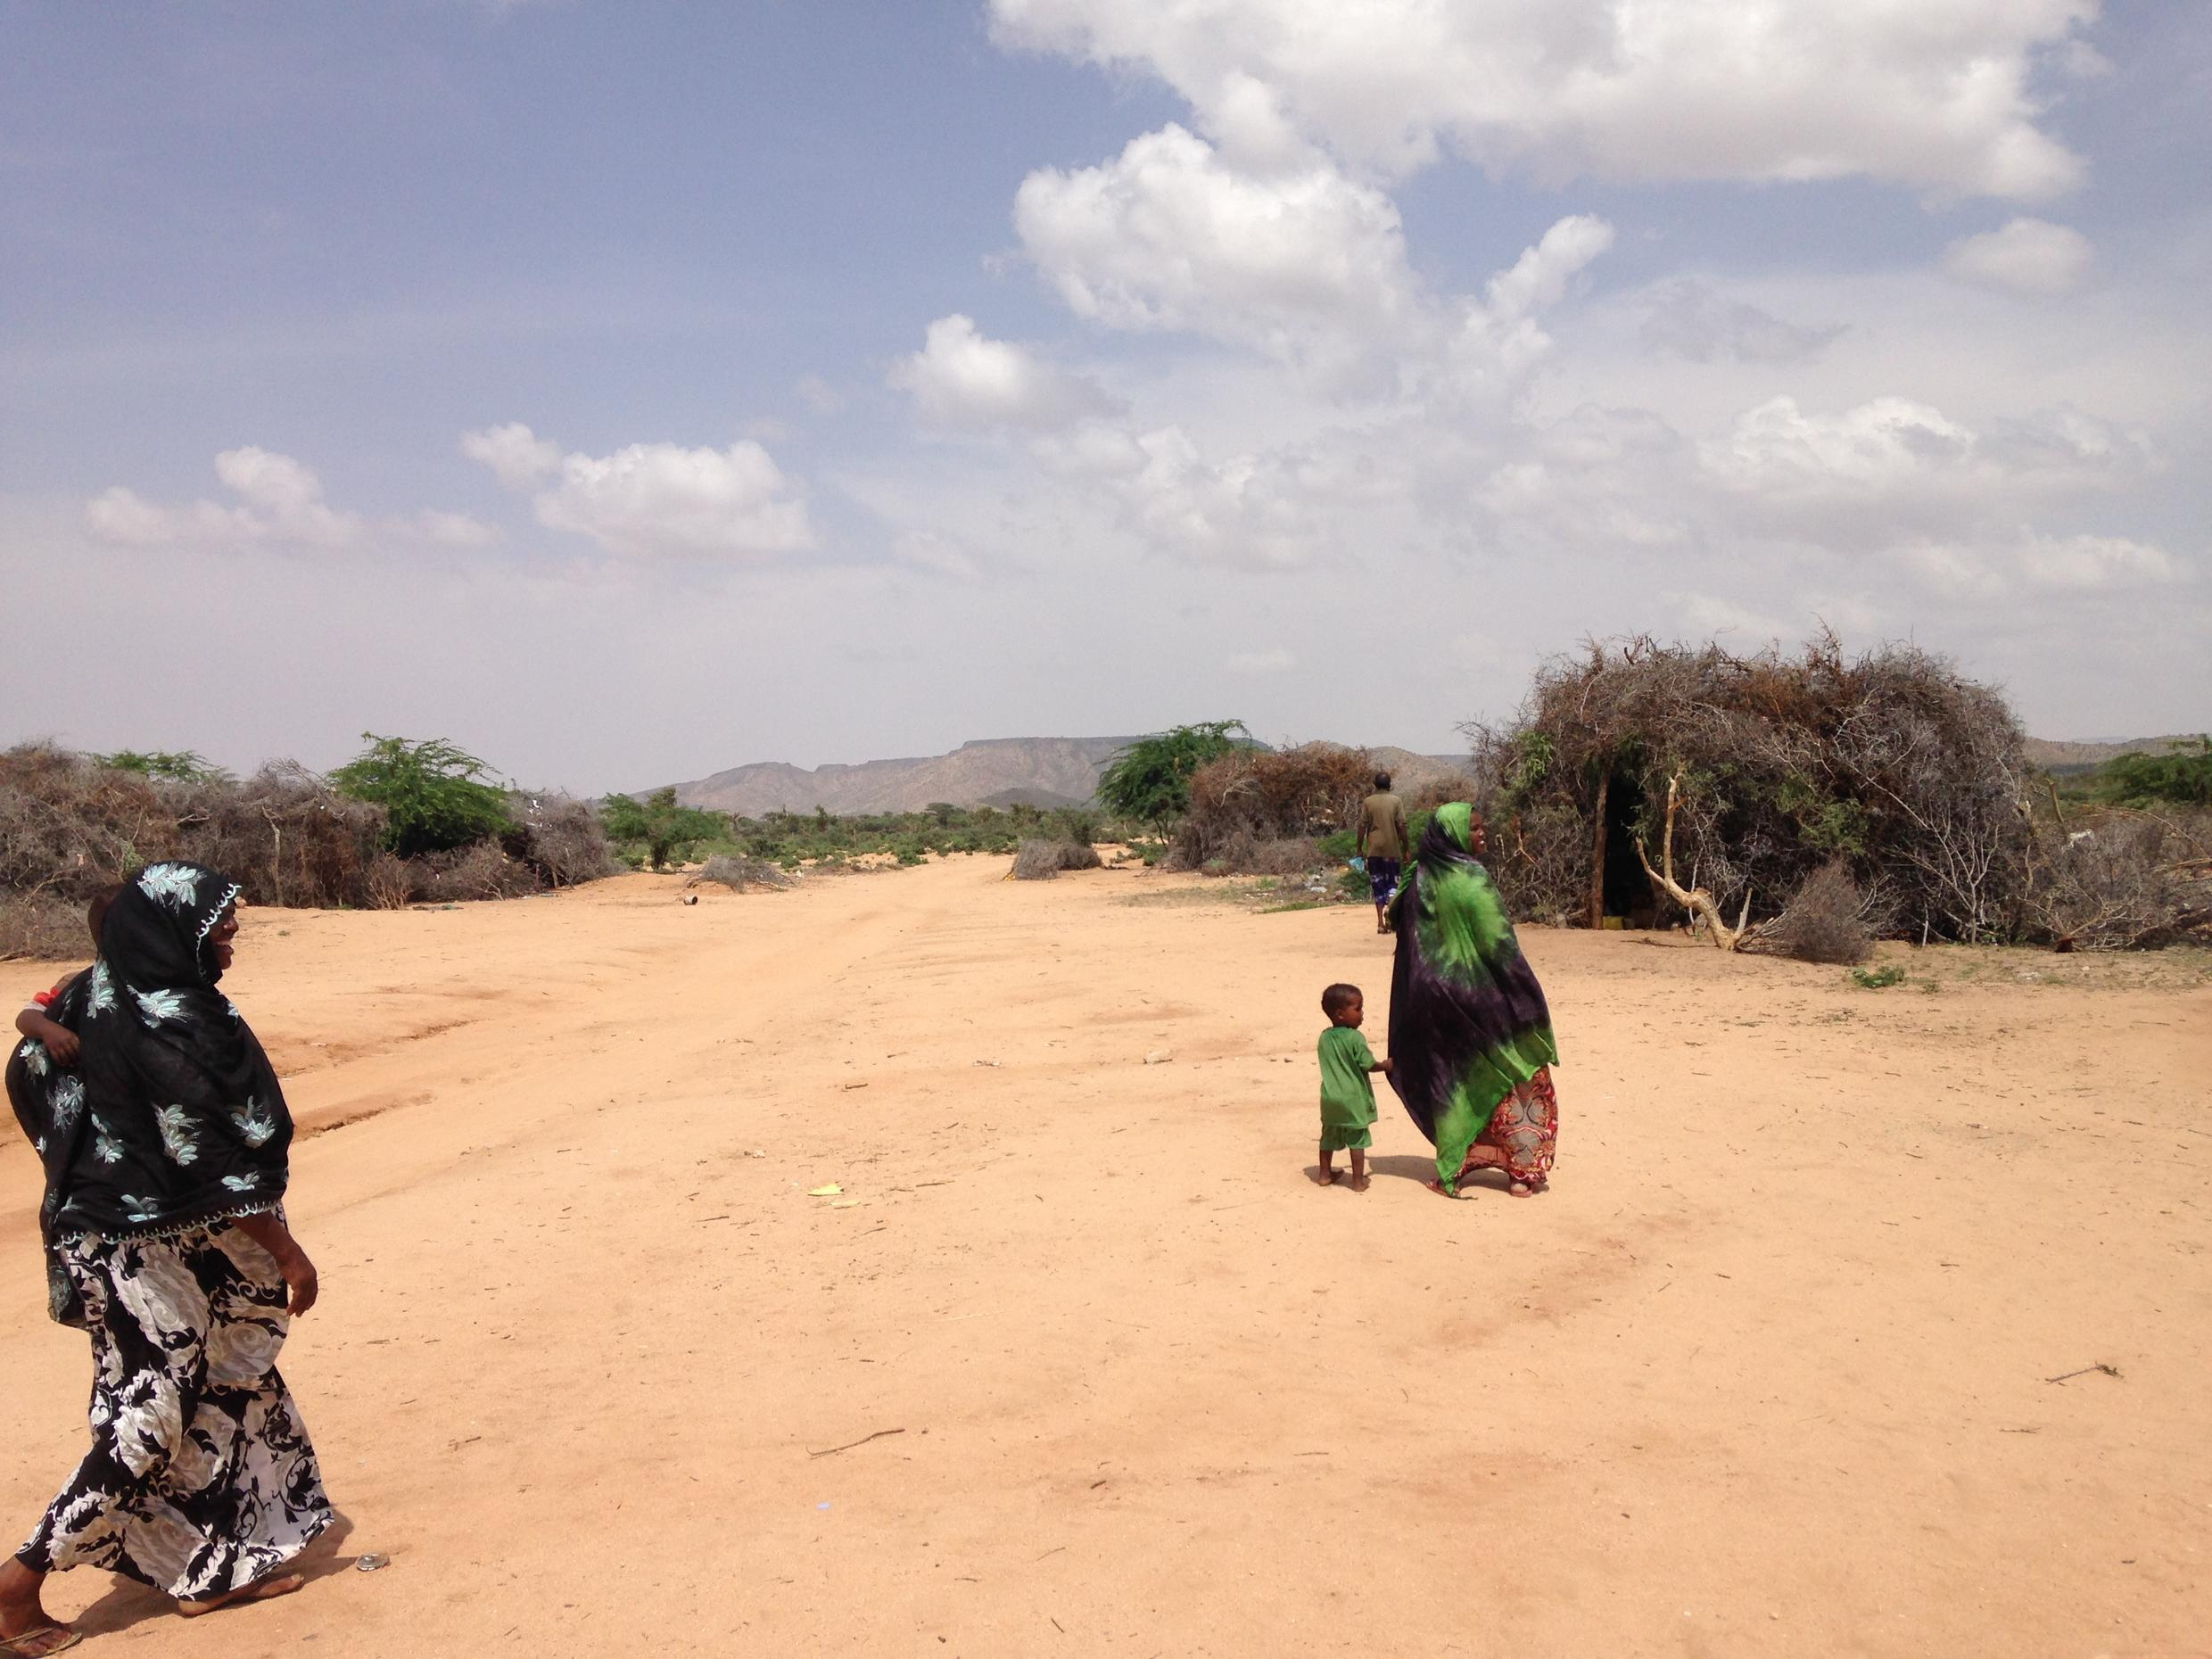 Pastoralists live by the side of the road in Bildaley village, Somaliland in order to get access to water